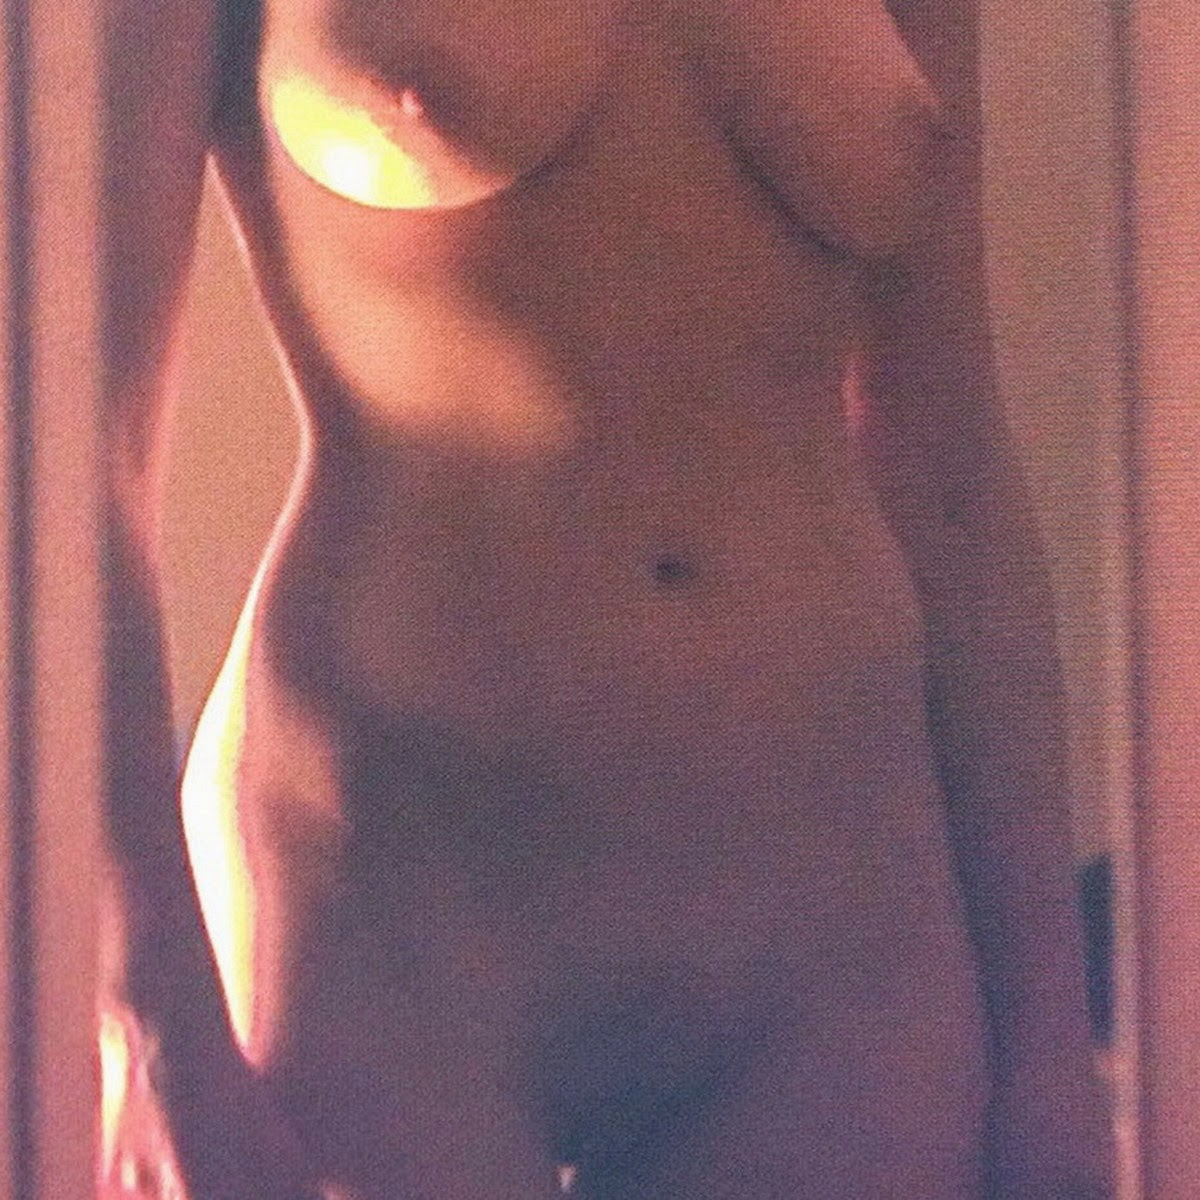 The phrase Scarlett johansson nudes many thanks